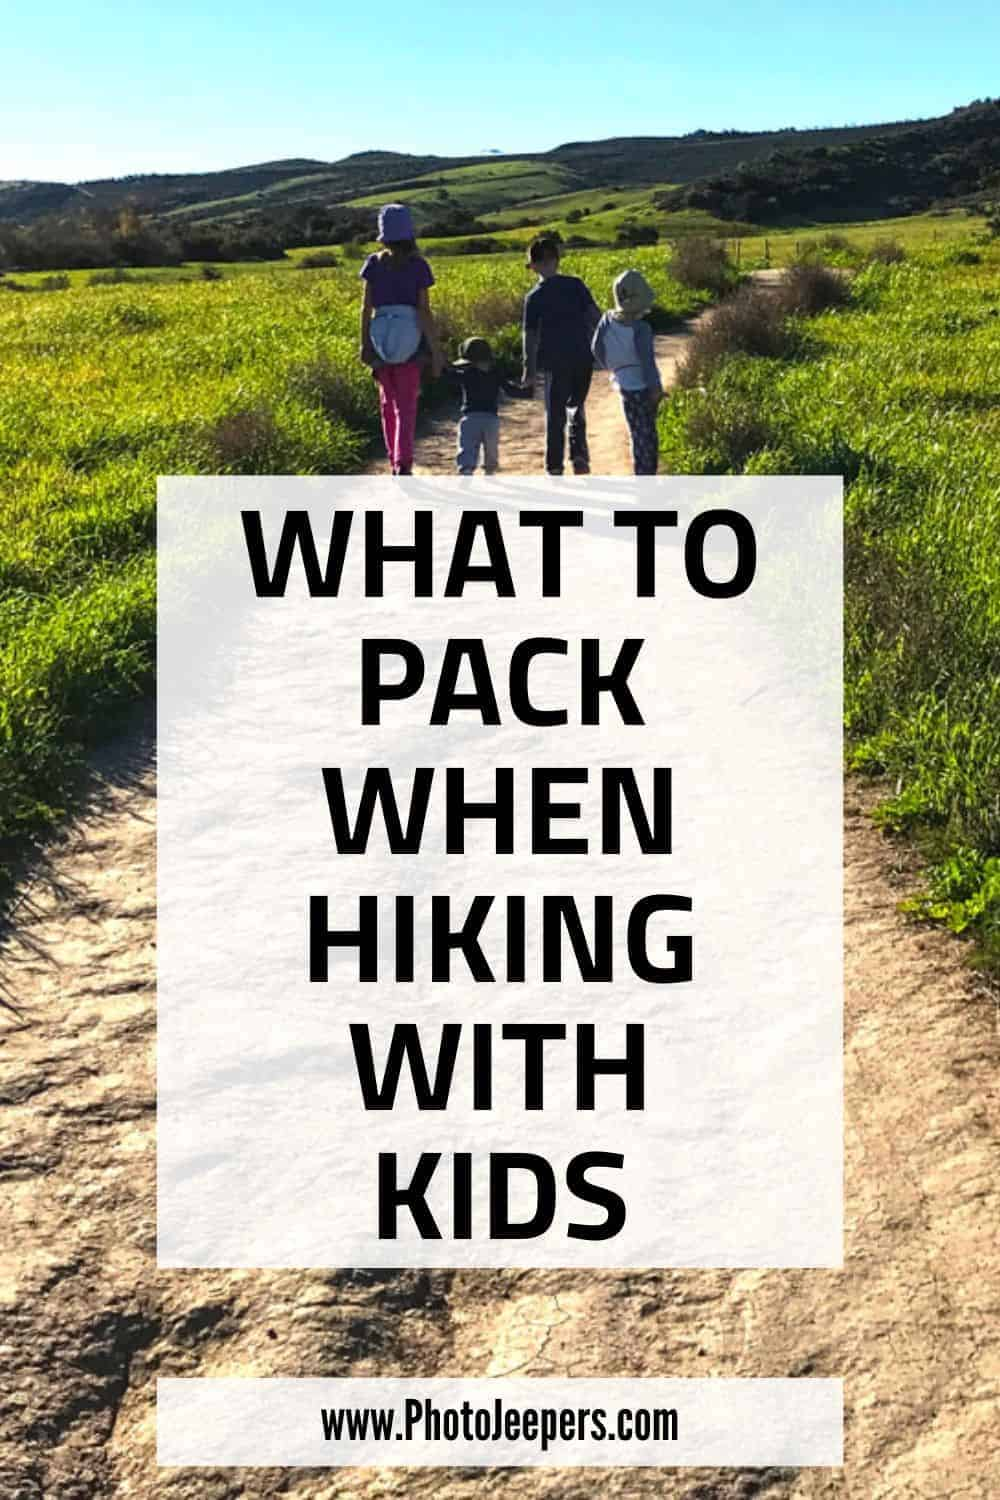 What to pack when hiking with kids: sun protection for hiking | hiking shoes for kids | hiking socks for kids | hydration packs for kids | child hiking carriers #hiking #familytravel #hikinggear #photojeepers